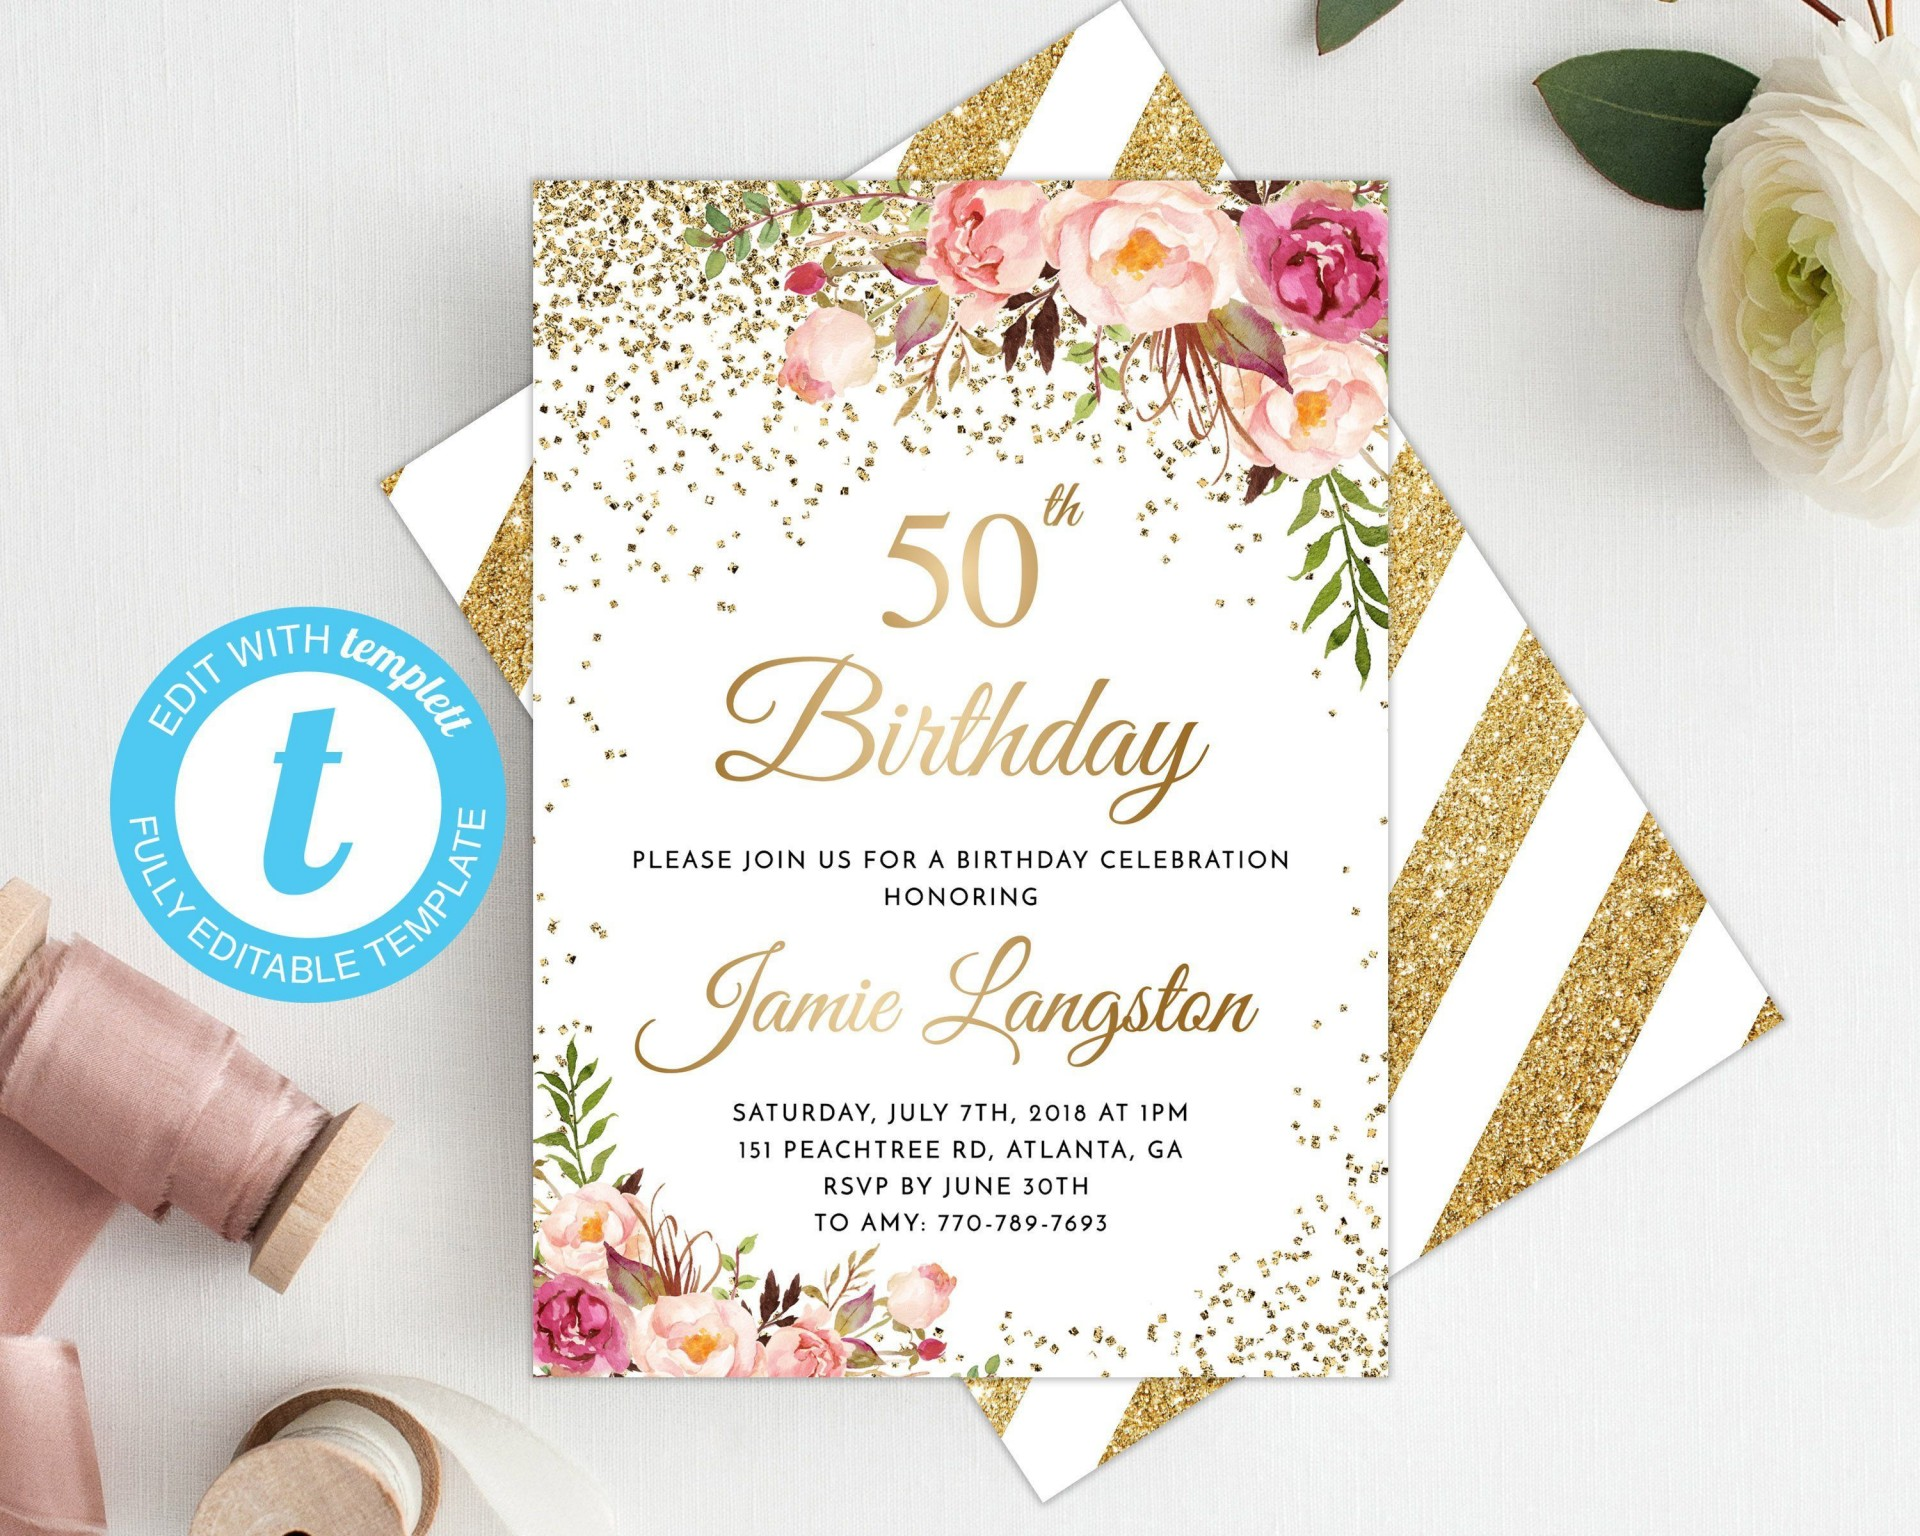 008 Astounding 50th Birthday Invitation Template Highest Clarity  For Him Microsoft Word Free1920